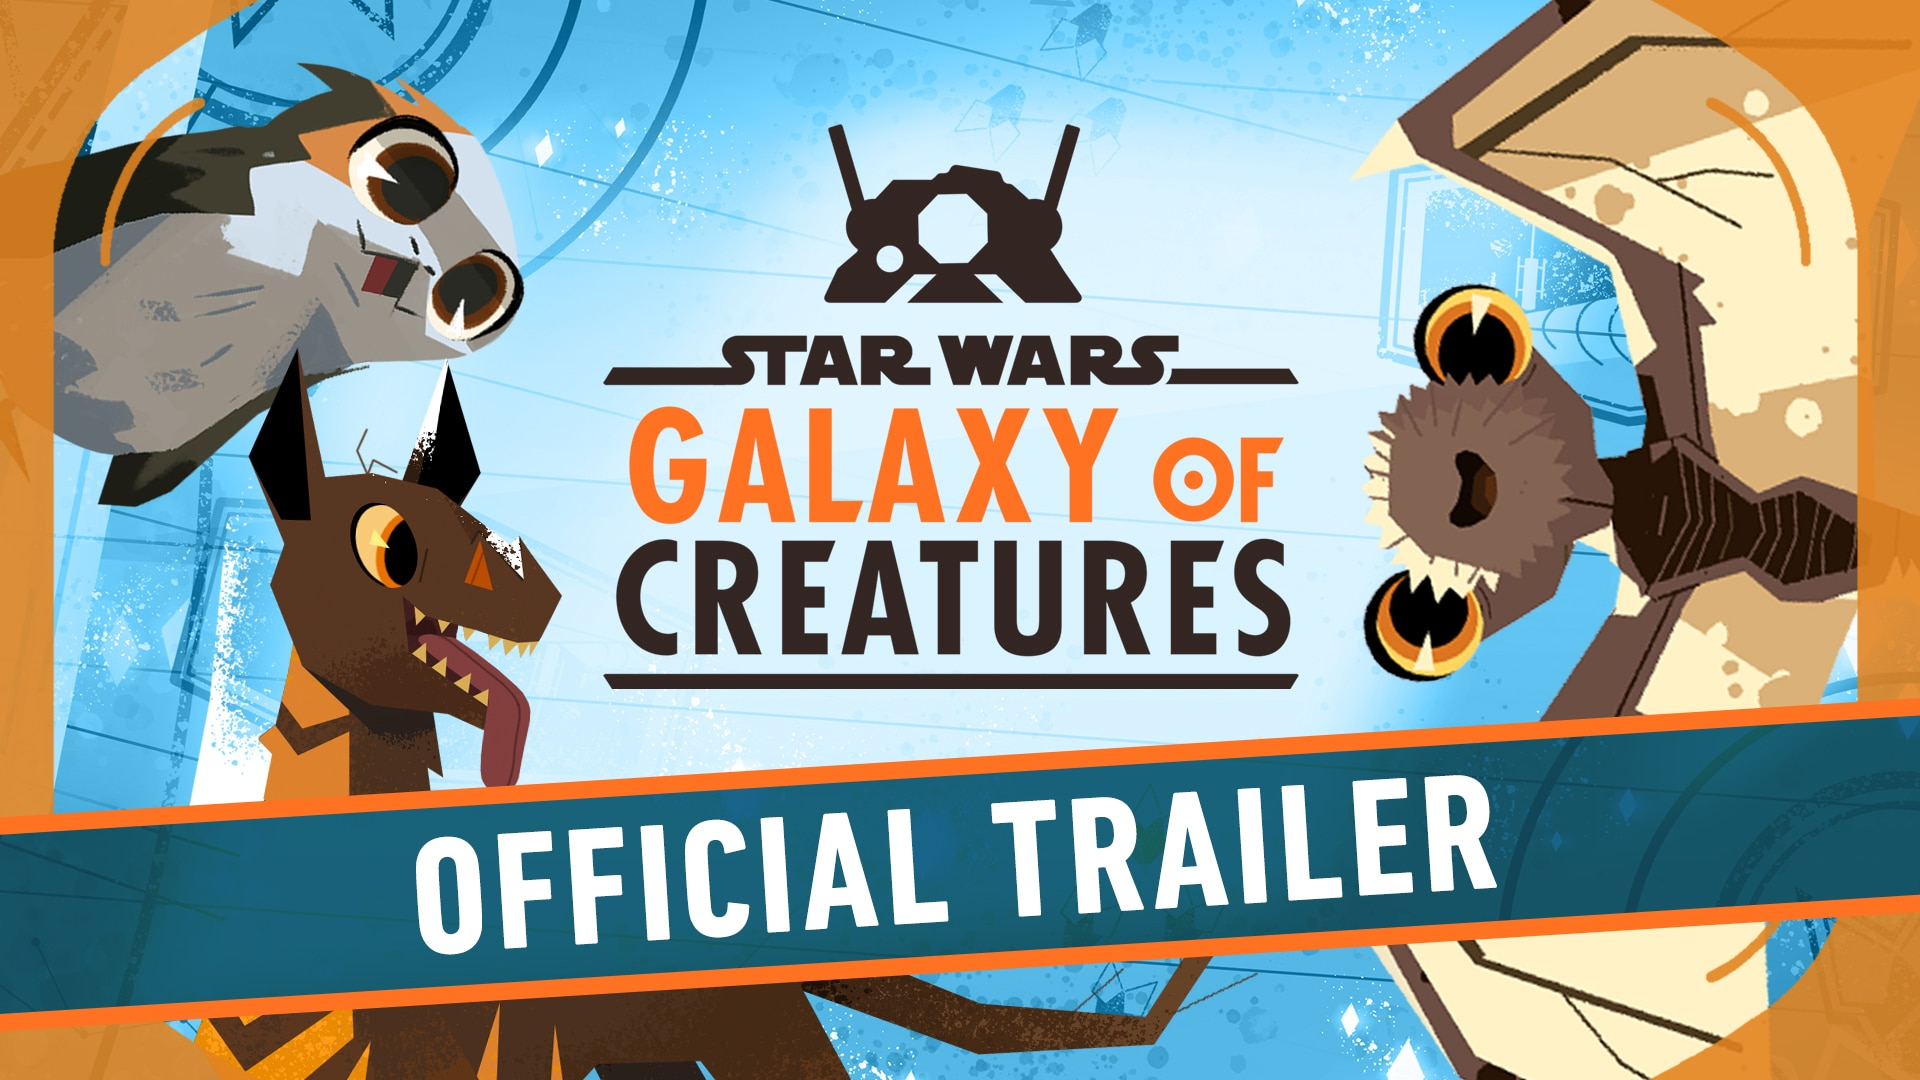 Official Trailer | Star Wars Galaxy of Creatures